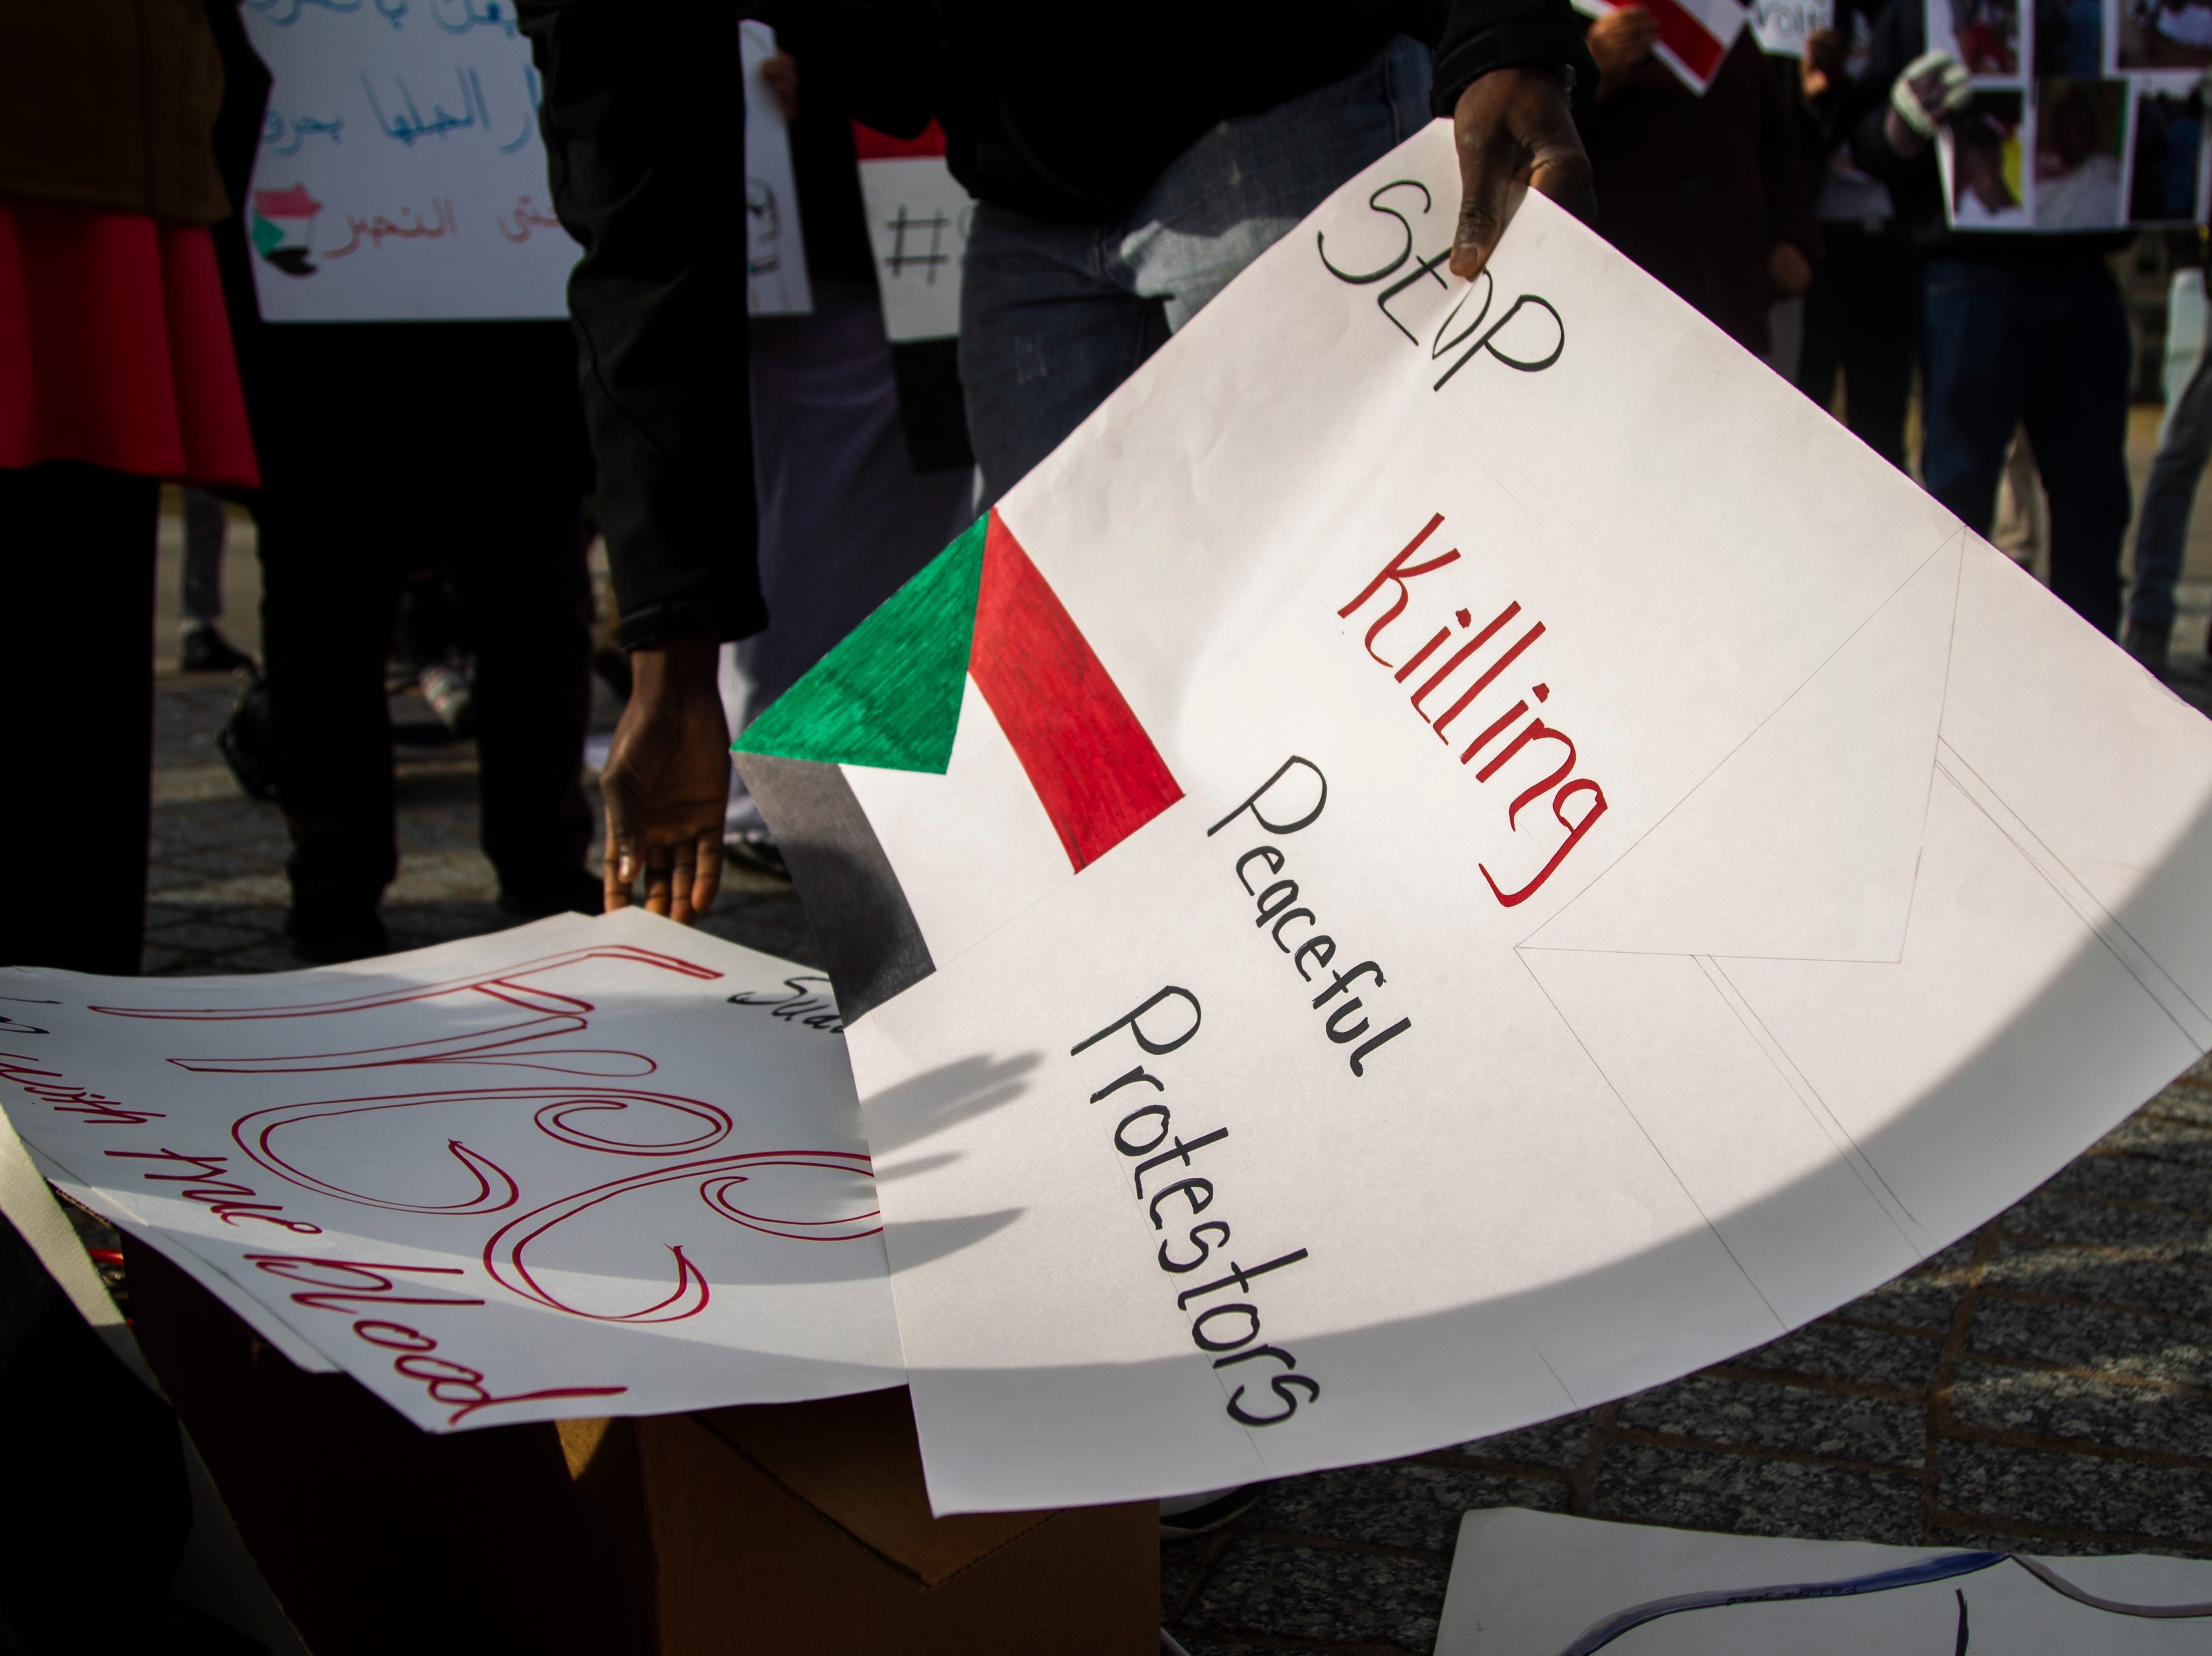 Sudanese members of the Iowa City community gather during a peaceful protest in opposition to the killings in Sudan on Monday, Dec. 24, 2018, in downtown Iowa City.